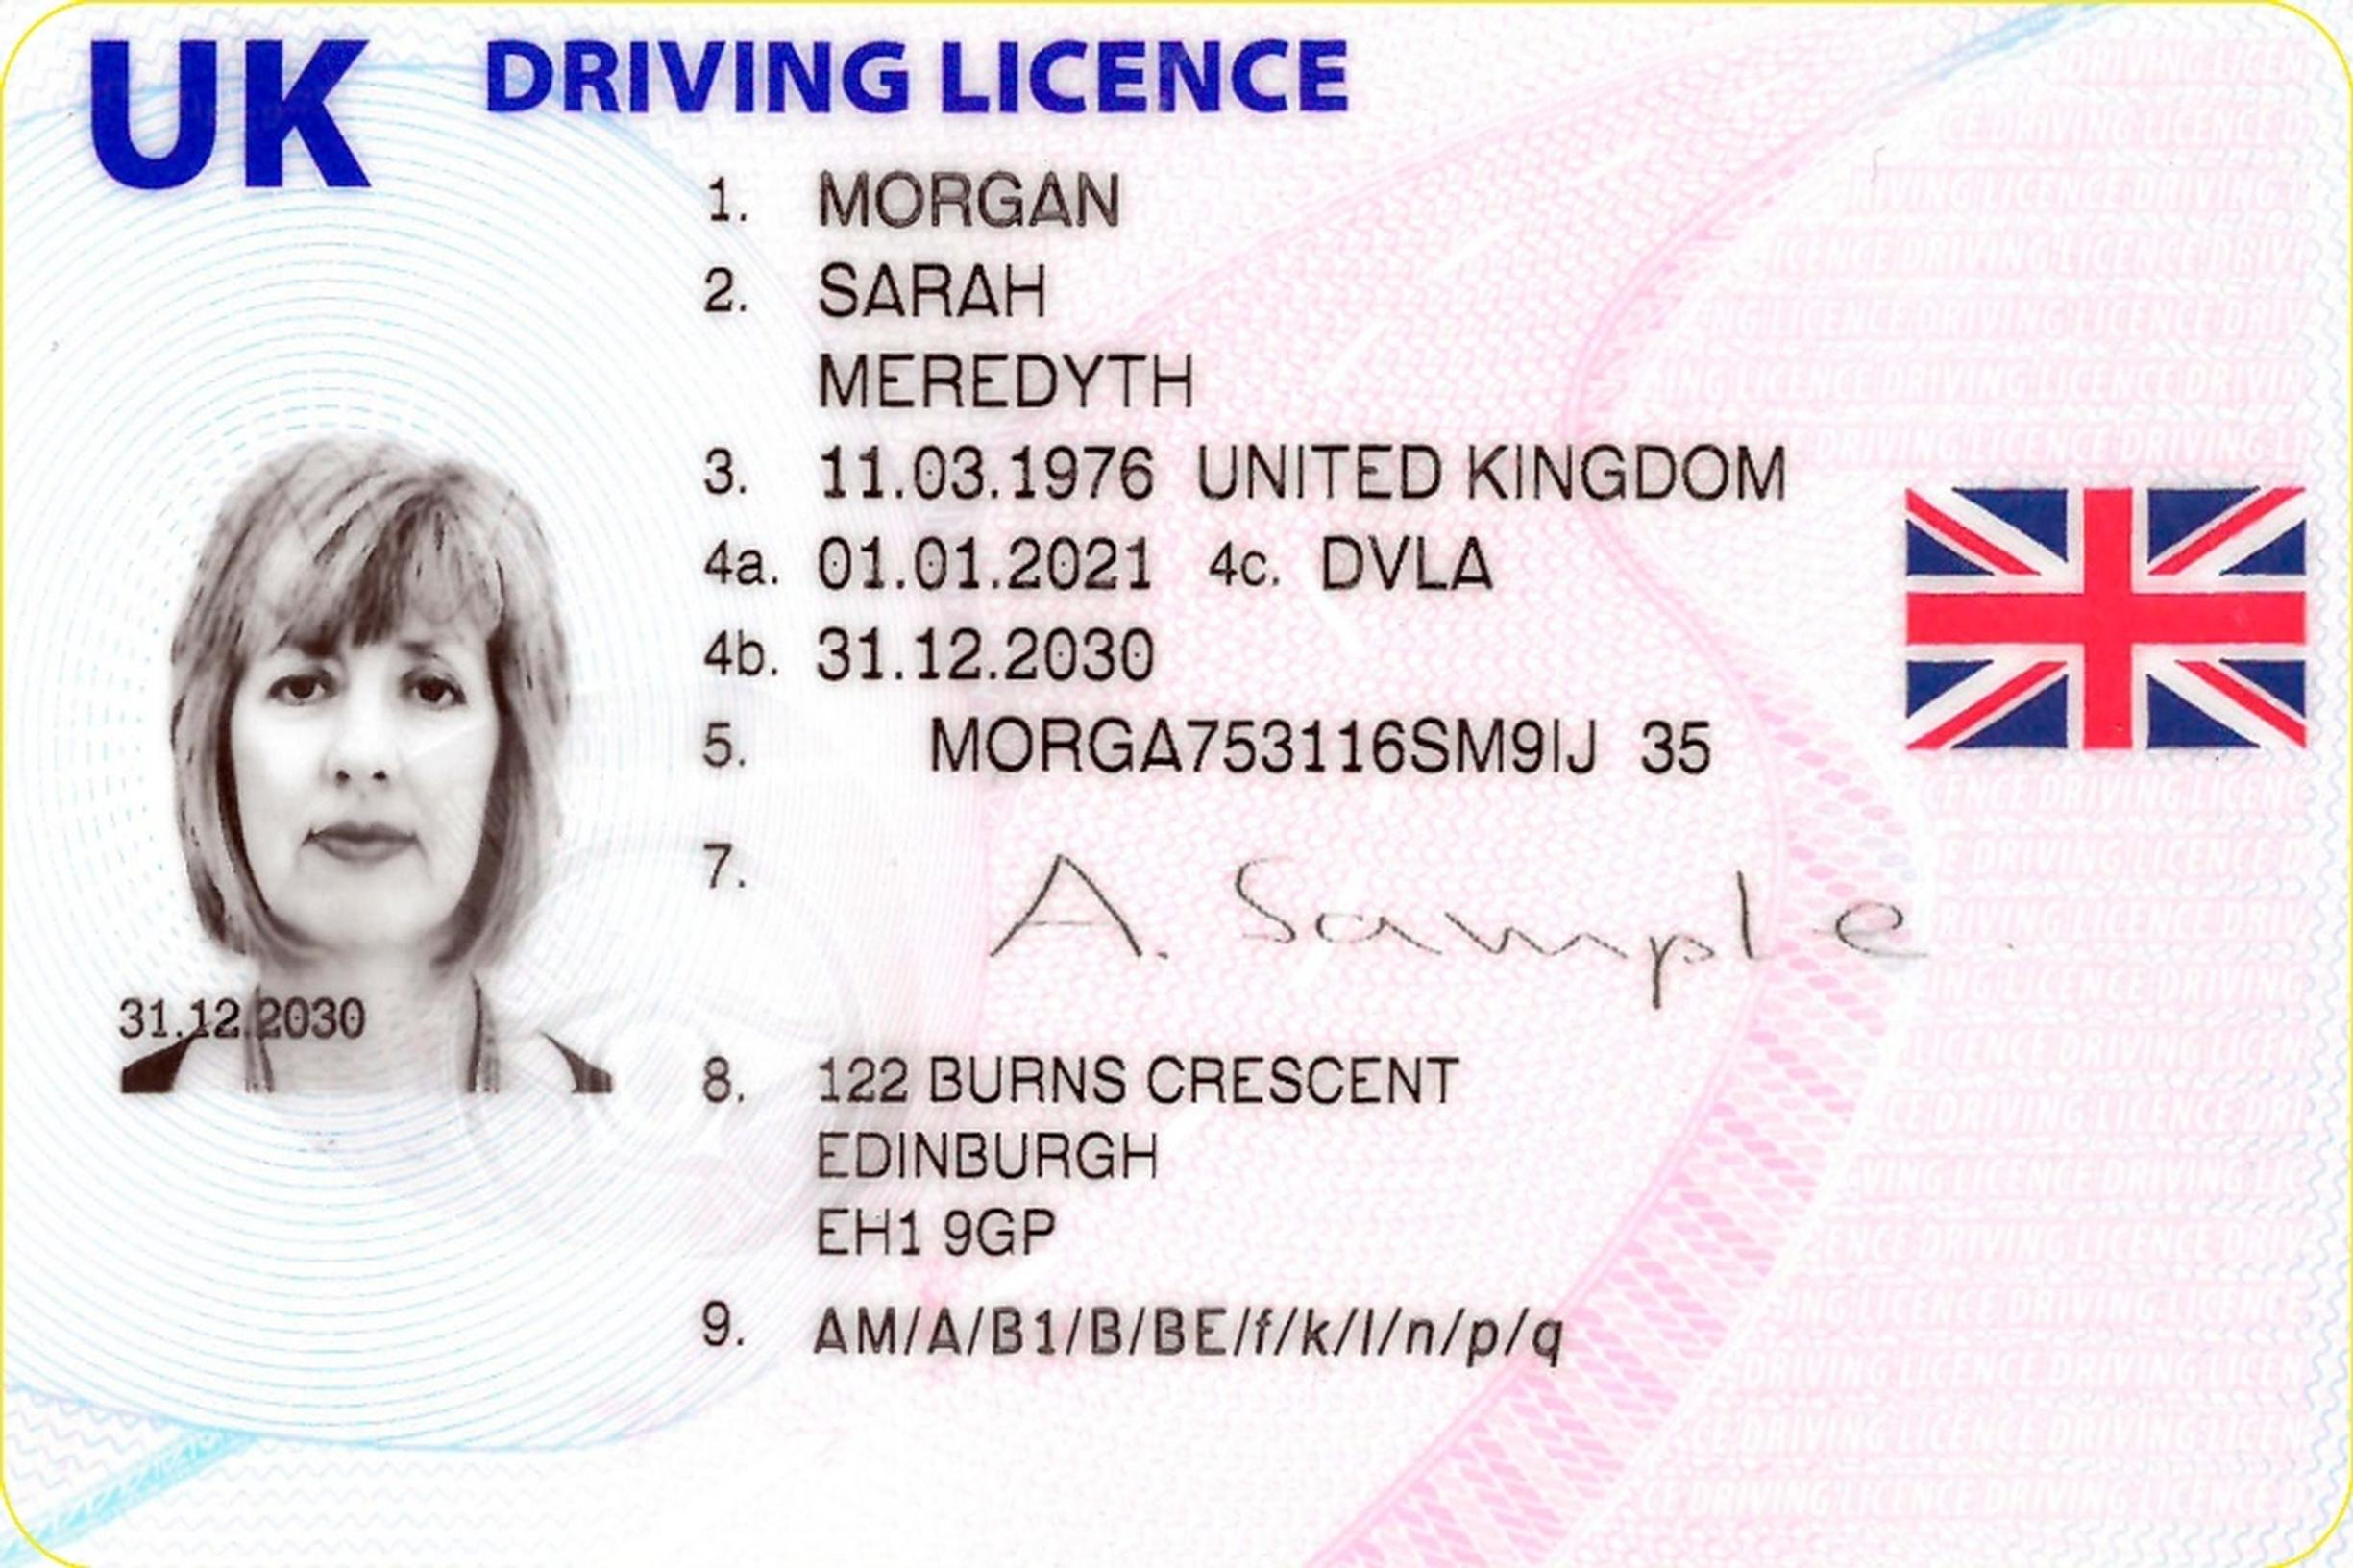 The new UK driving licence design